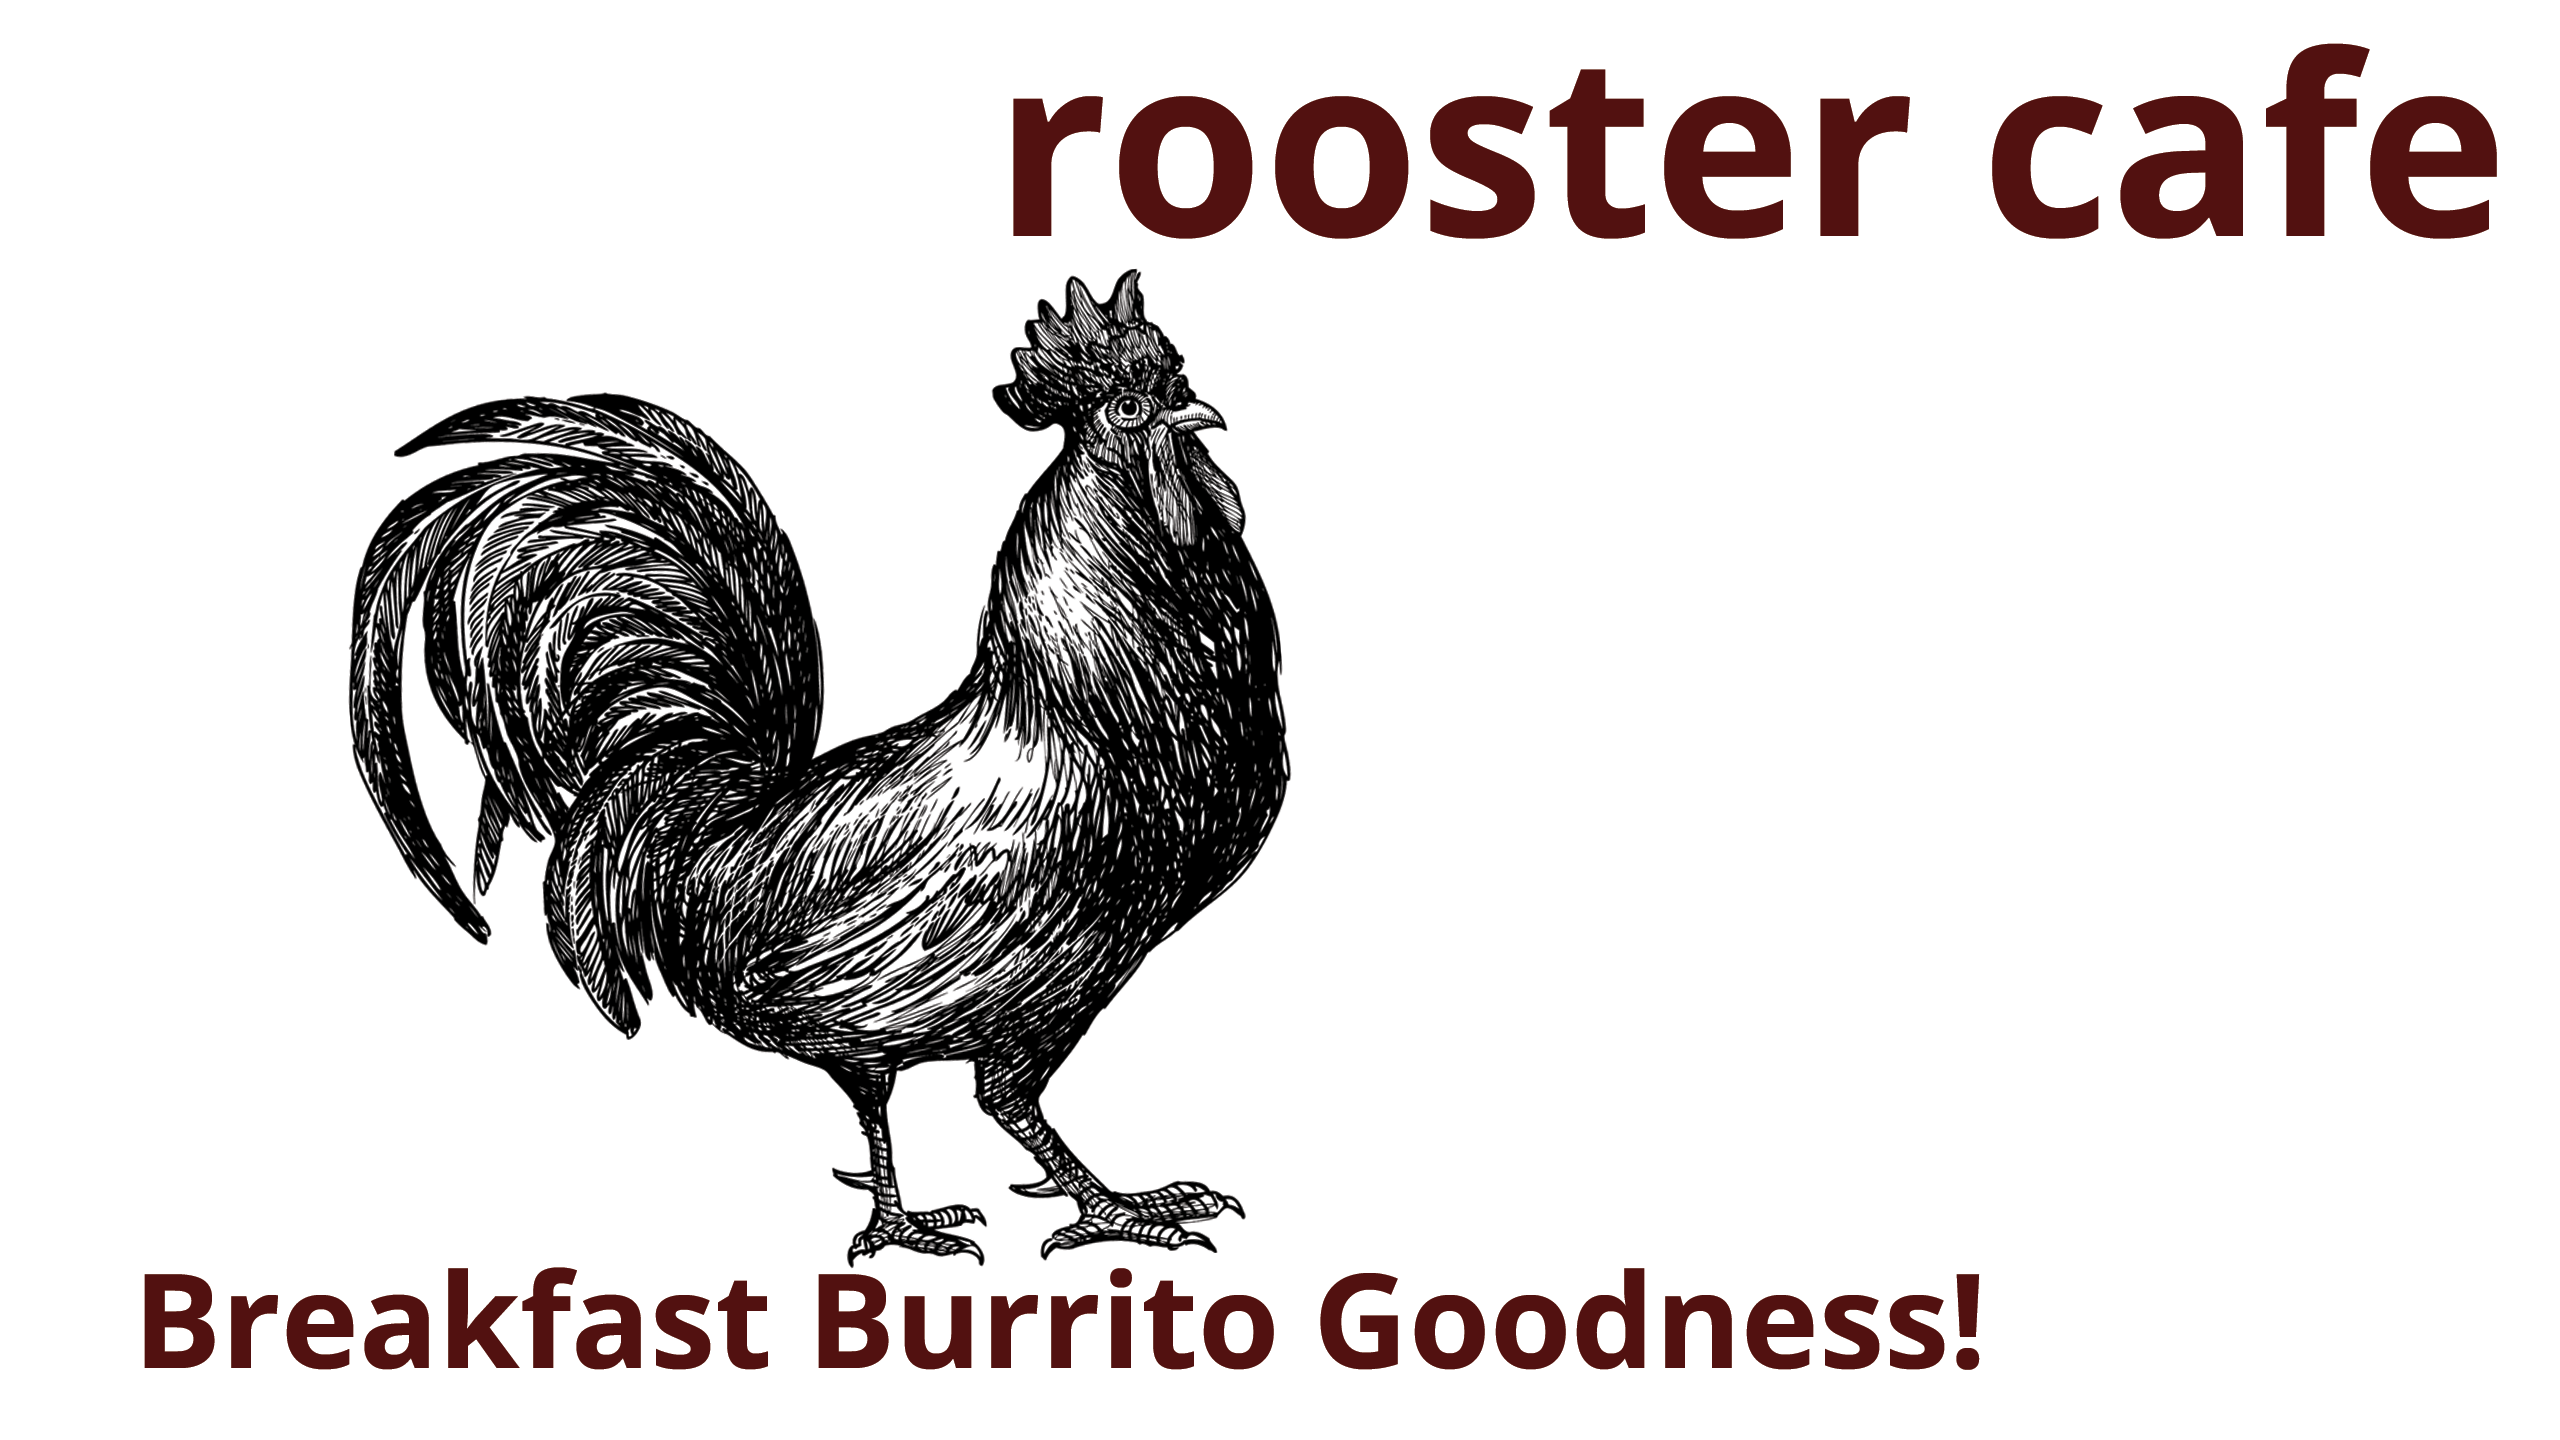 Rooster Cafe Breakfast Burrito